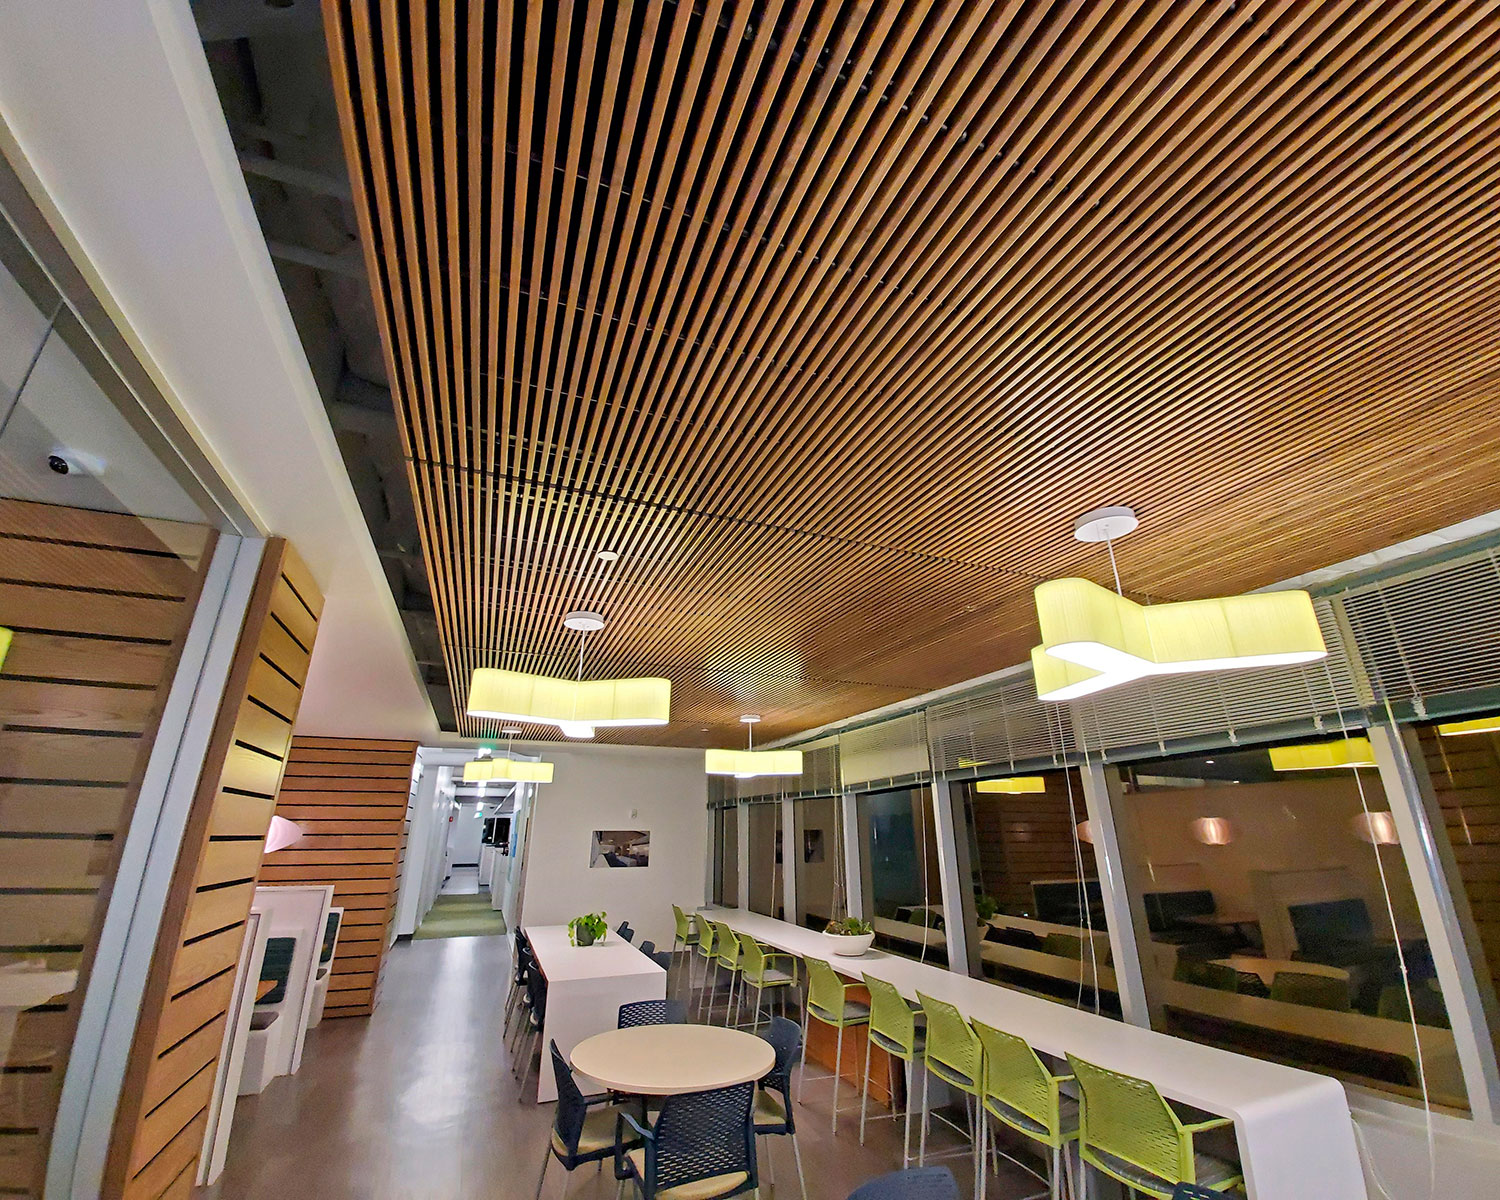 Ceiling Walls Wood W Lime Chairs